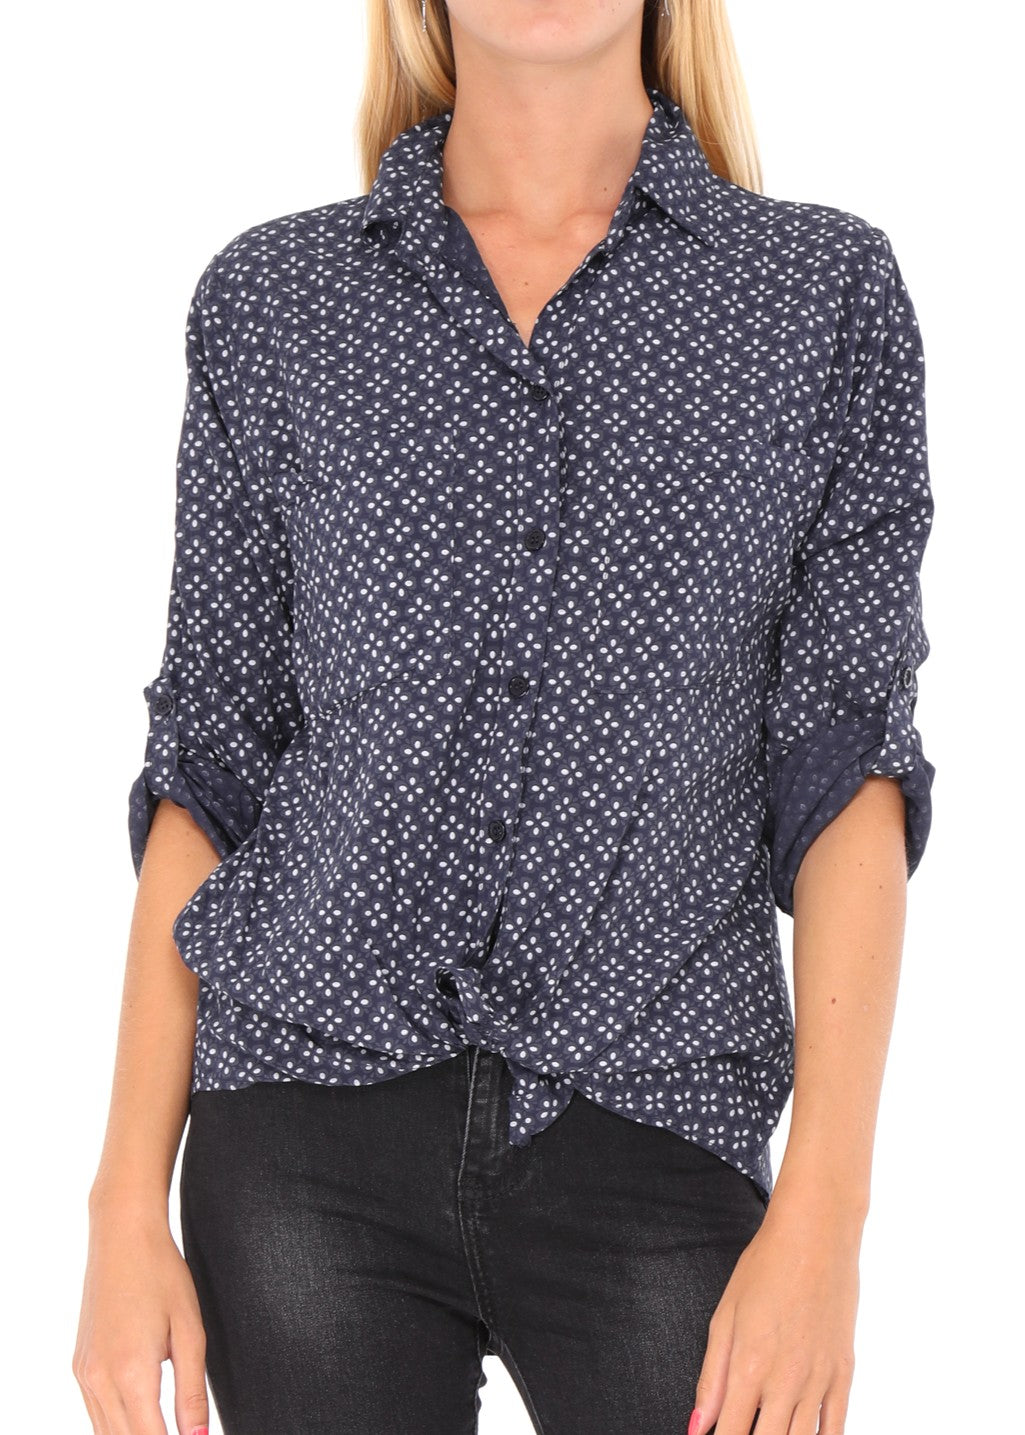 AMELIE - Patterned Shirt - Navy